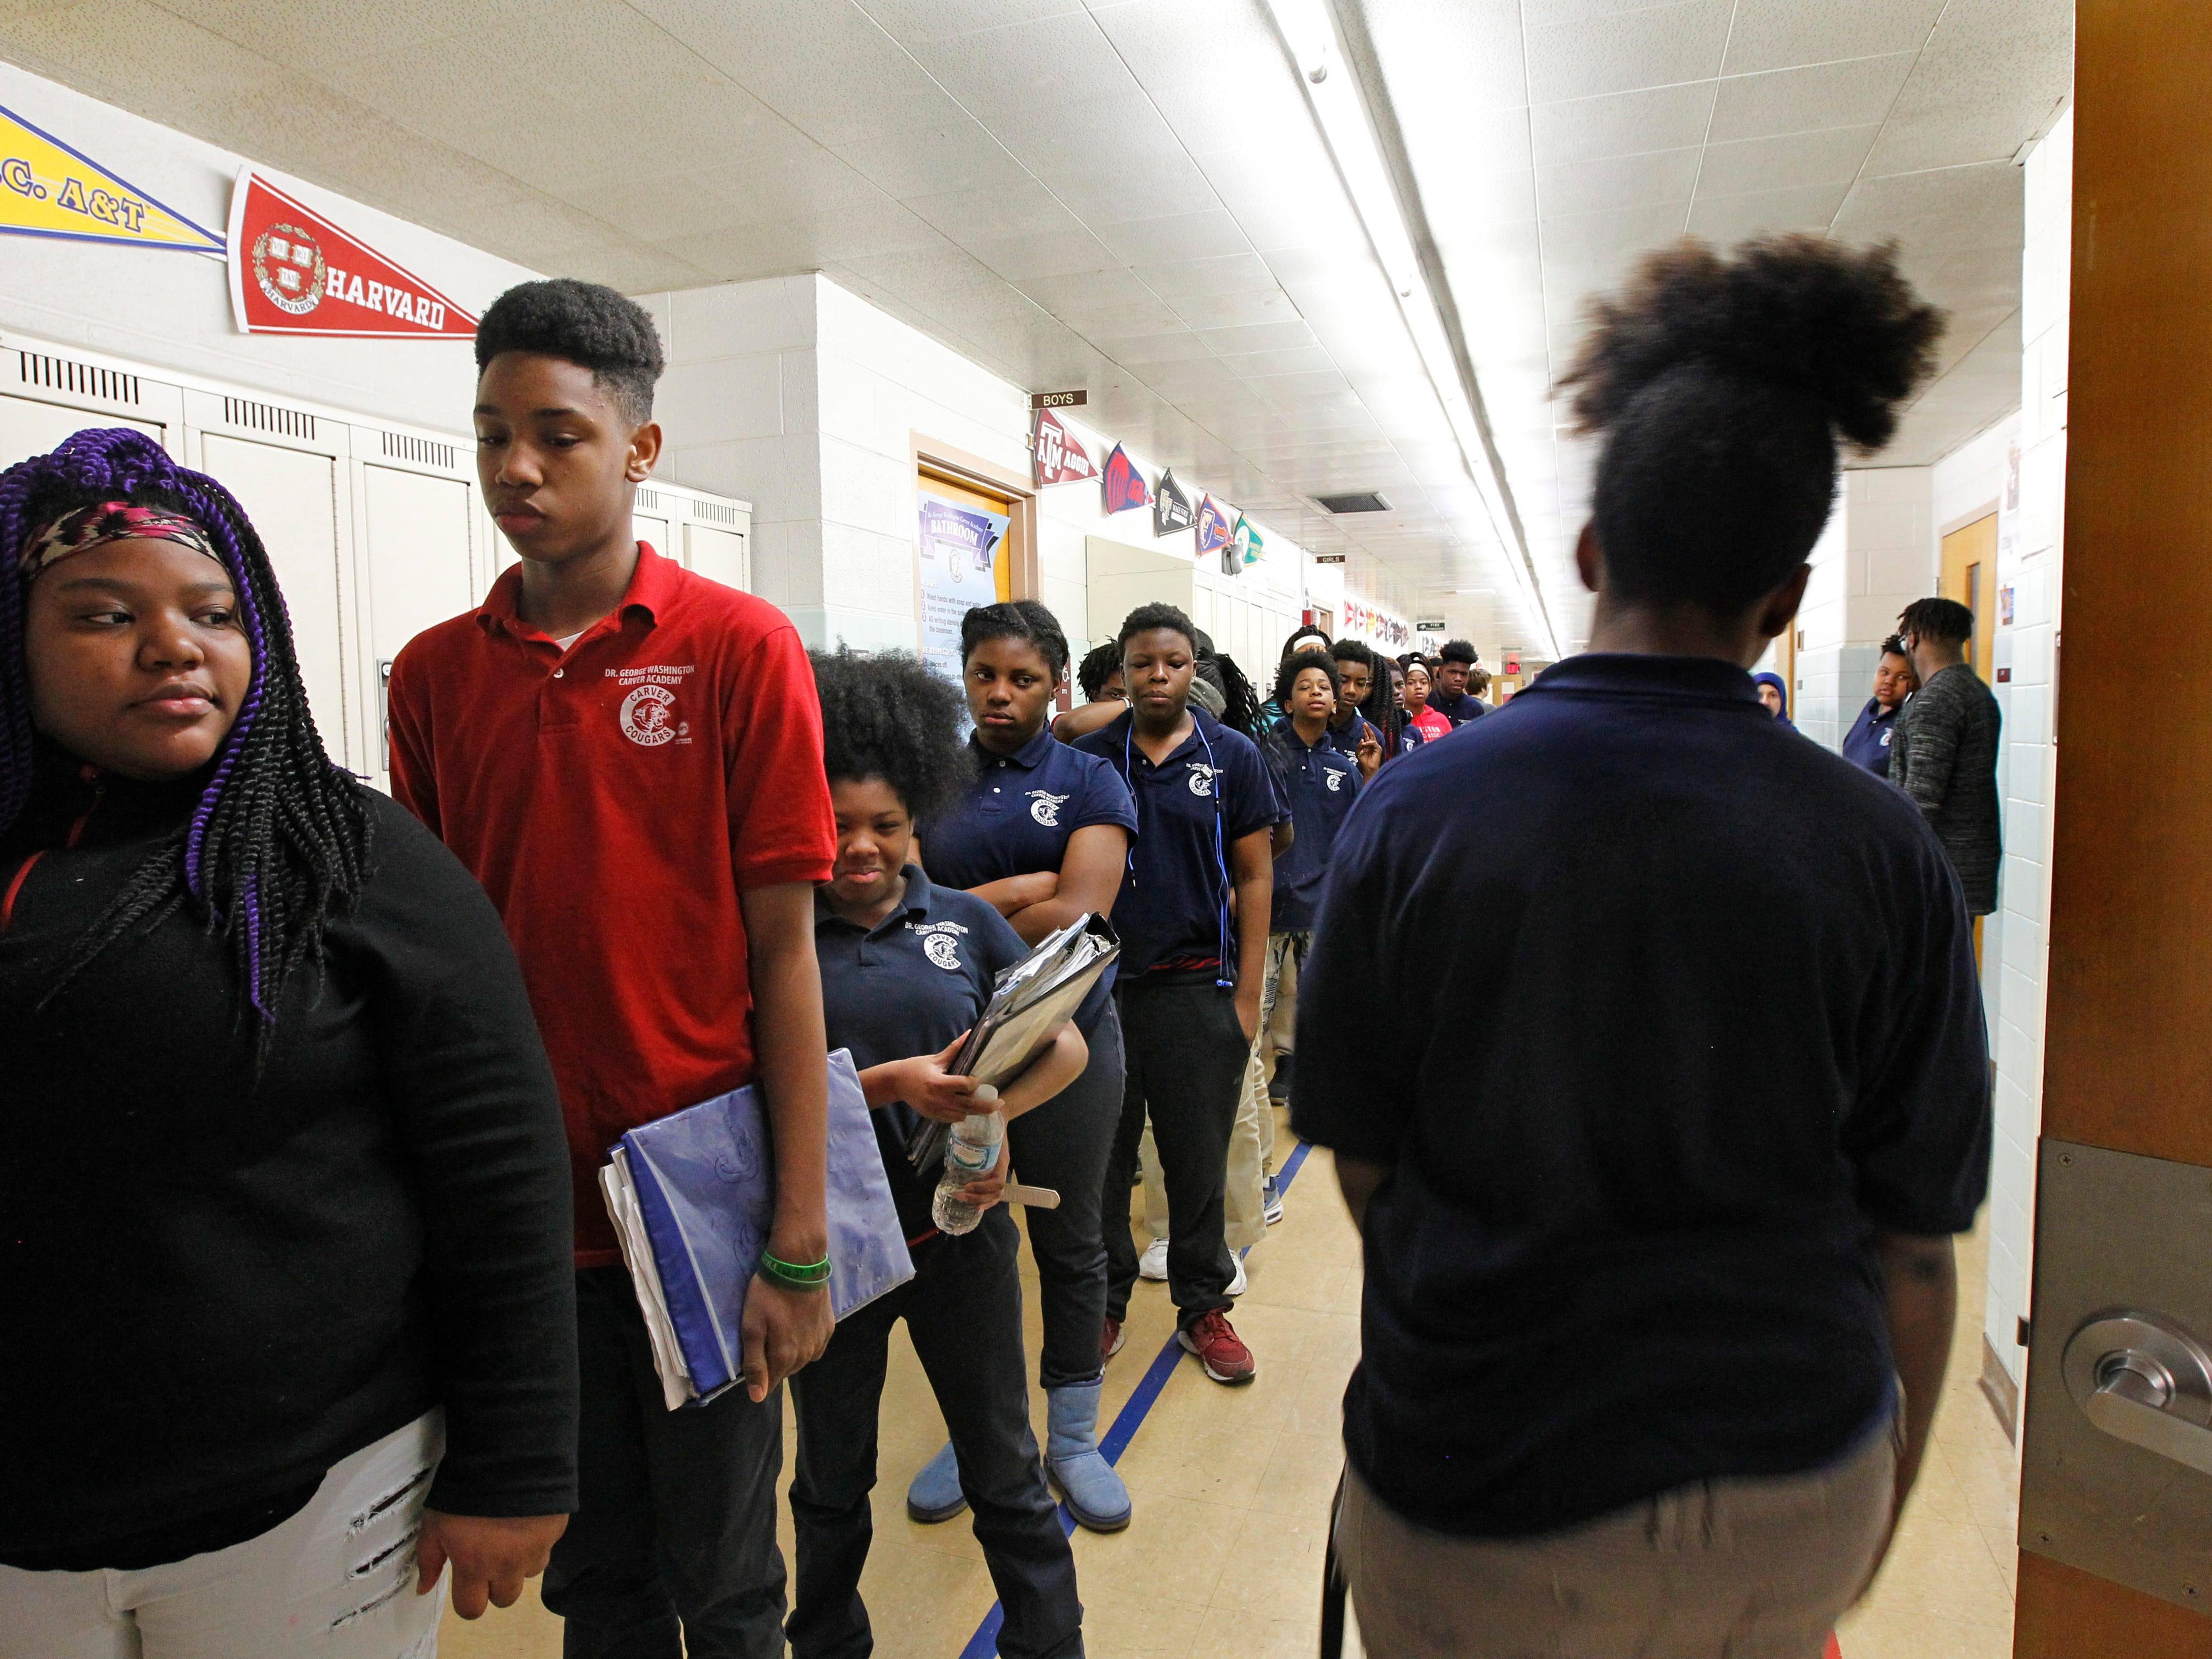 Students transition from class to class on  at Carver Academy.